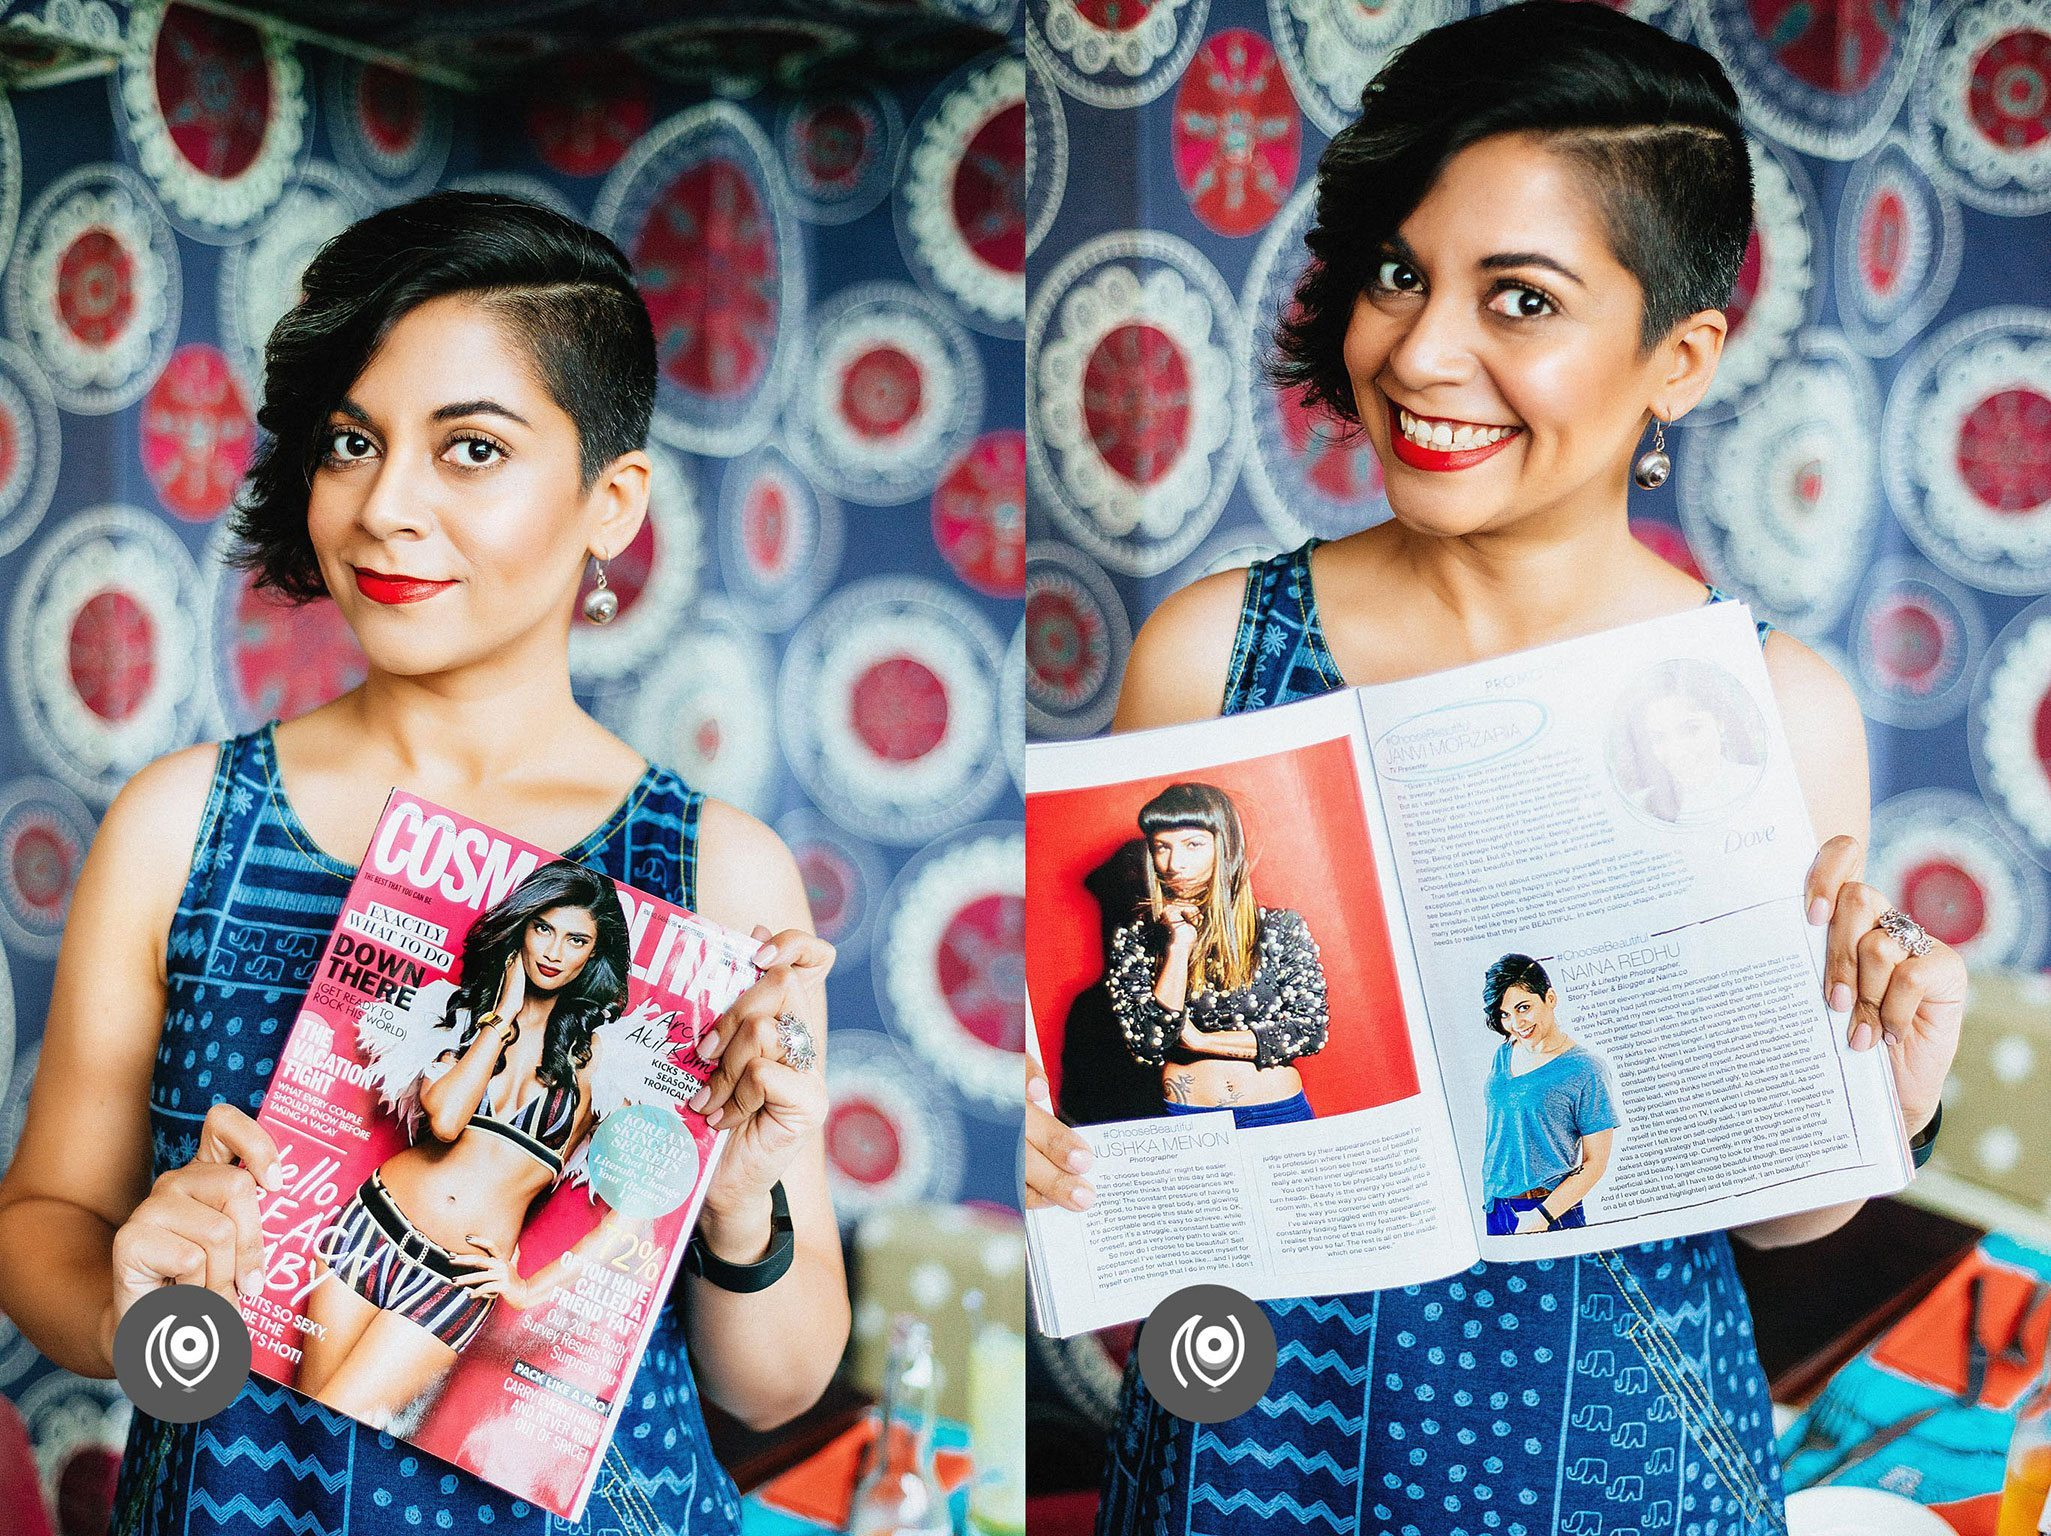 Cosmopolitan India Magazine, Dove, #ChooseBeautiful Campaign, Press, Naina.co Luxury & Lifestyle, Photographer Storyteller, Blogger.